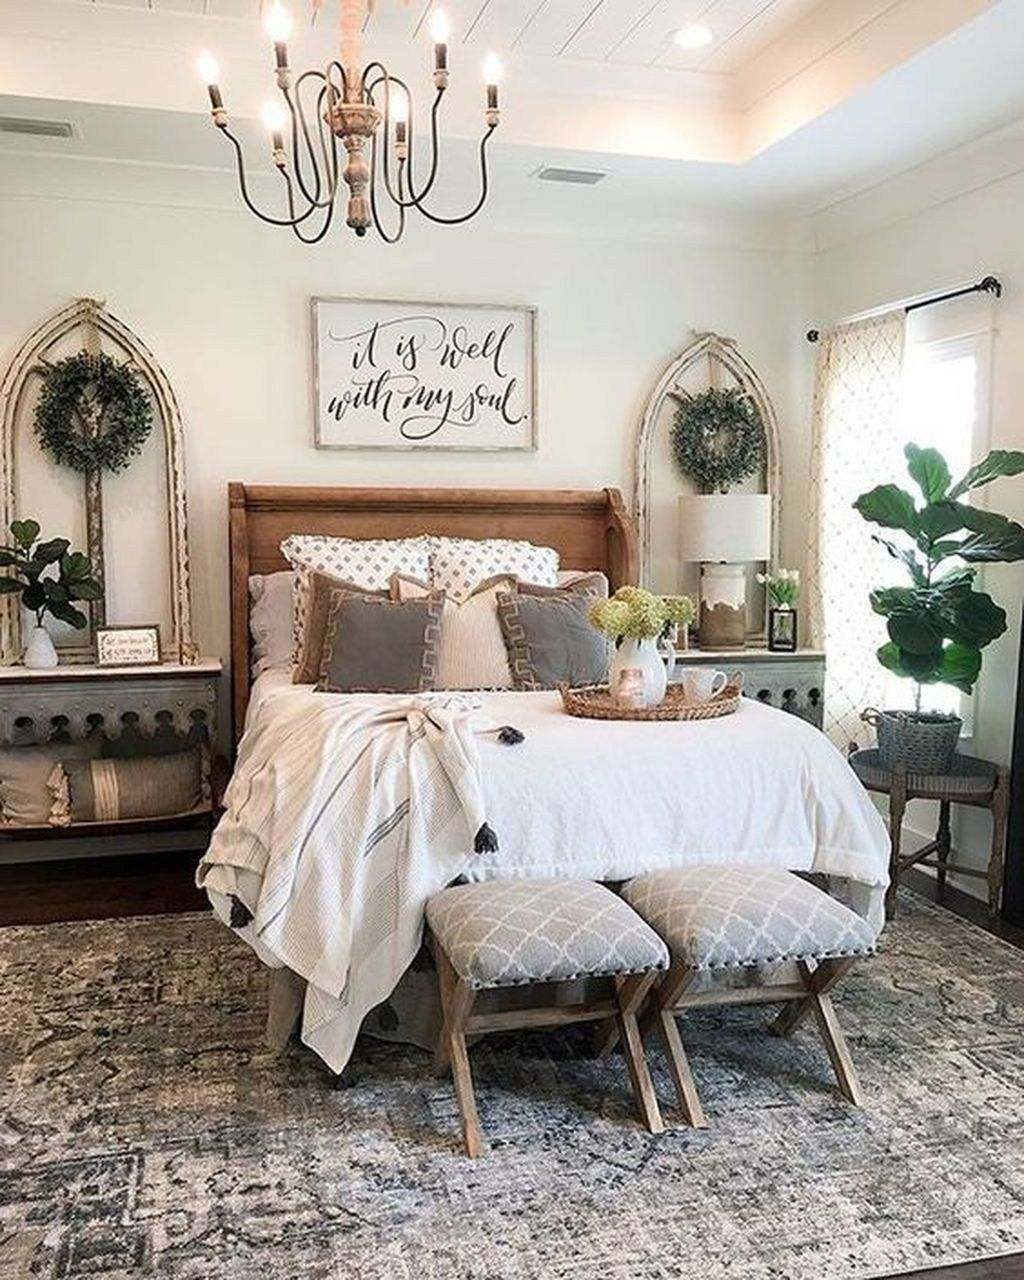 50 Farmhouse Master Bedroom Design Ideas Match For Any Room Page 35 Of 50 Choti Dec Home Decor Bedroom Farmhouse Style Master Bedroom Master Bedroom Design